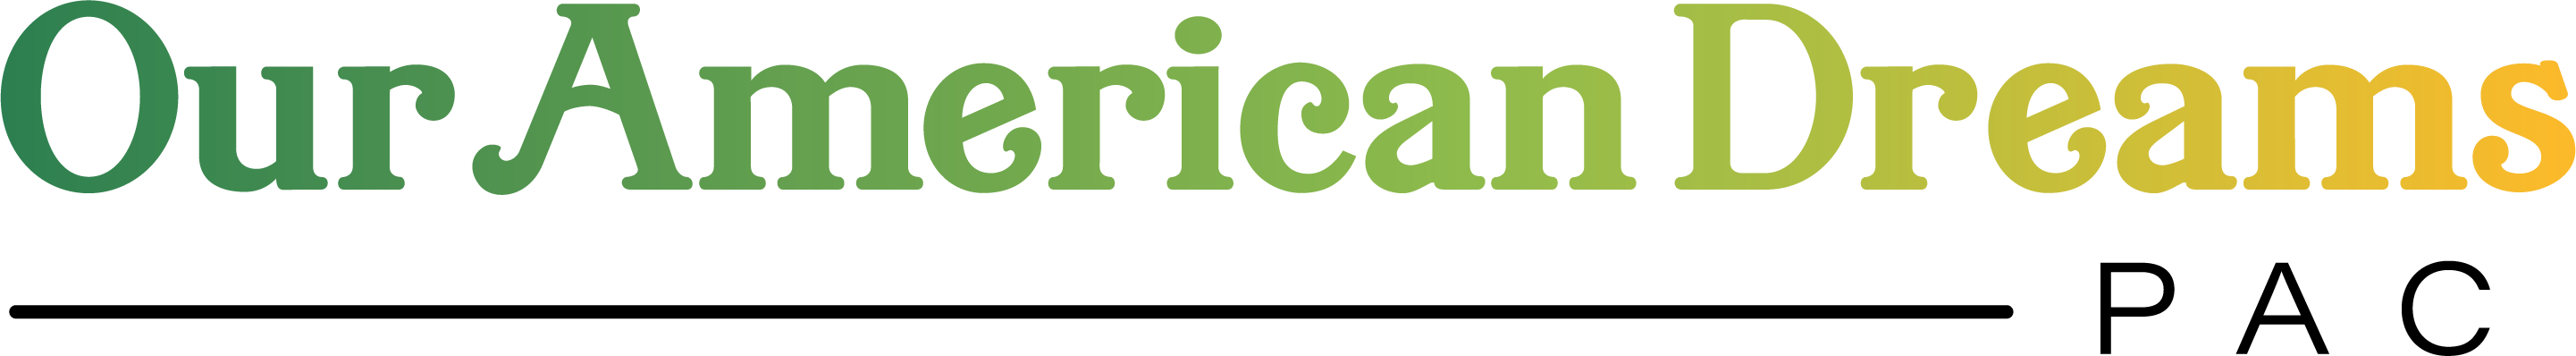 Our American Dreams PAC logo